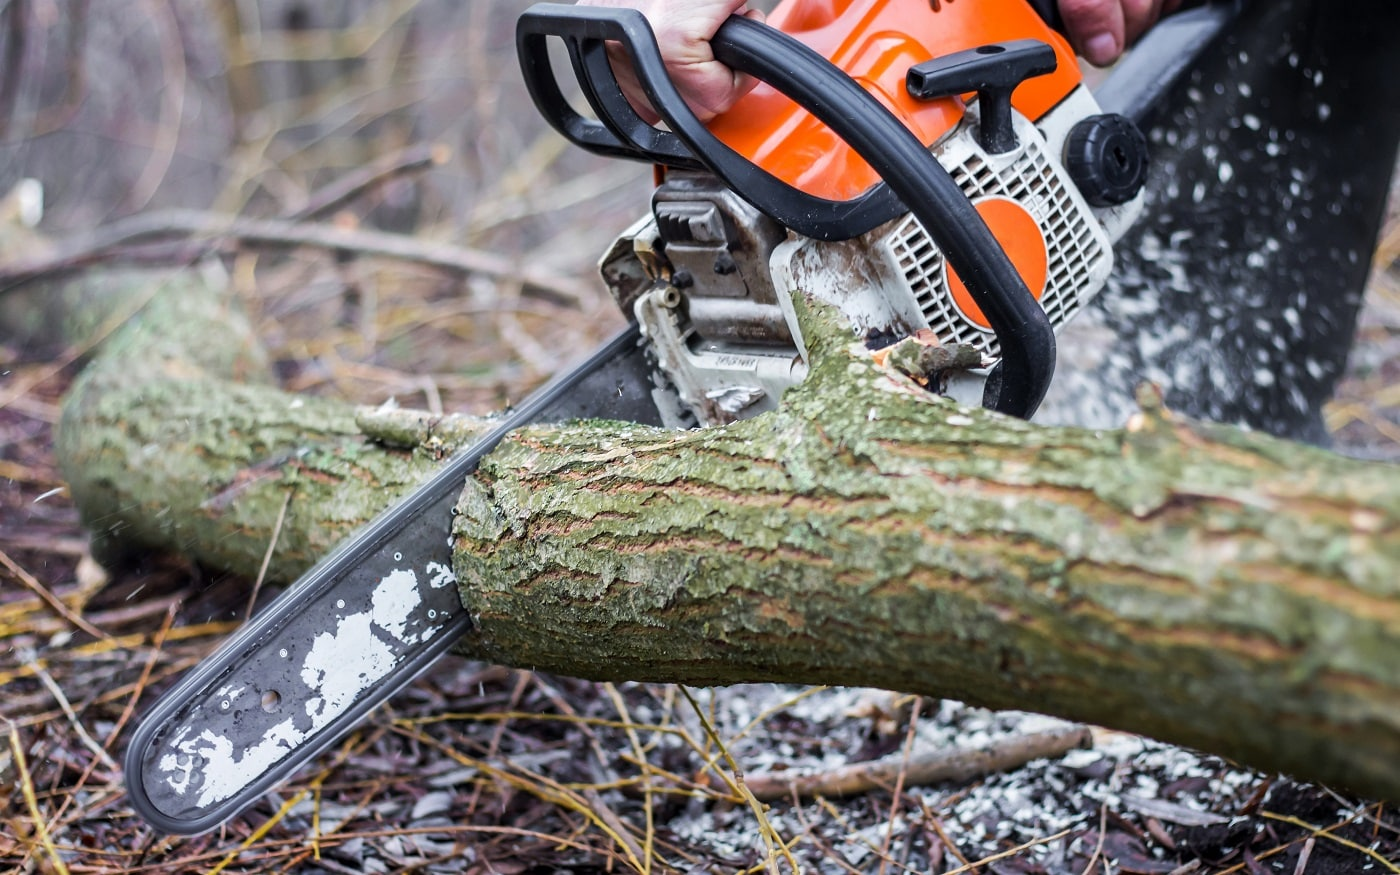 A man using a chainsaw saws a log in a forest